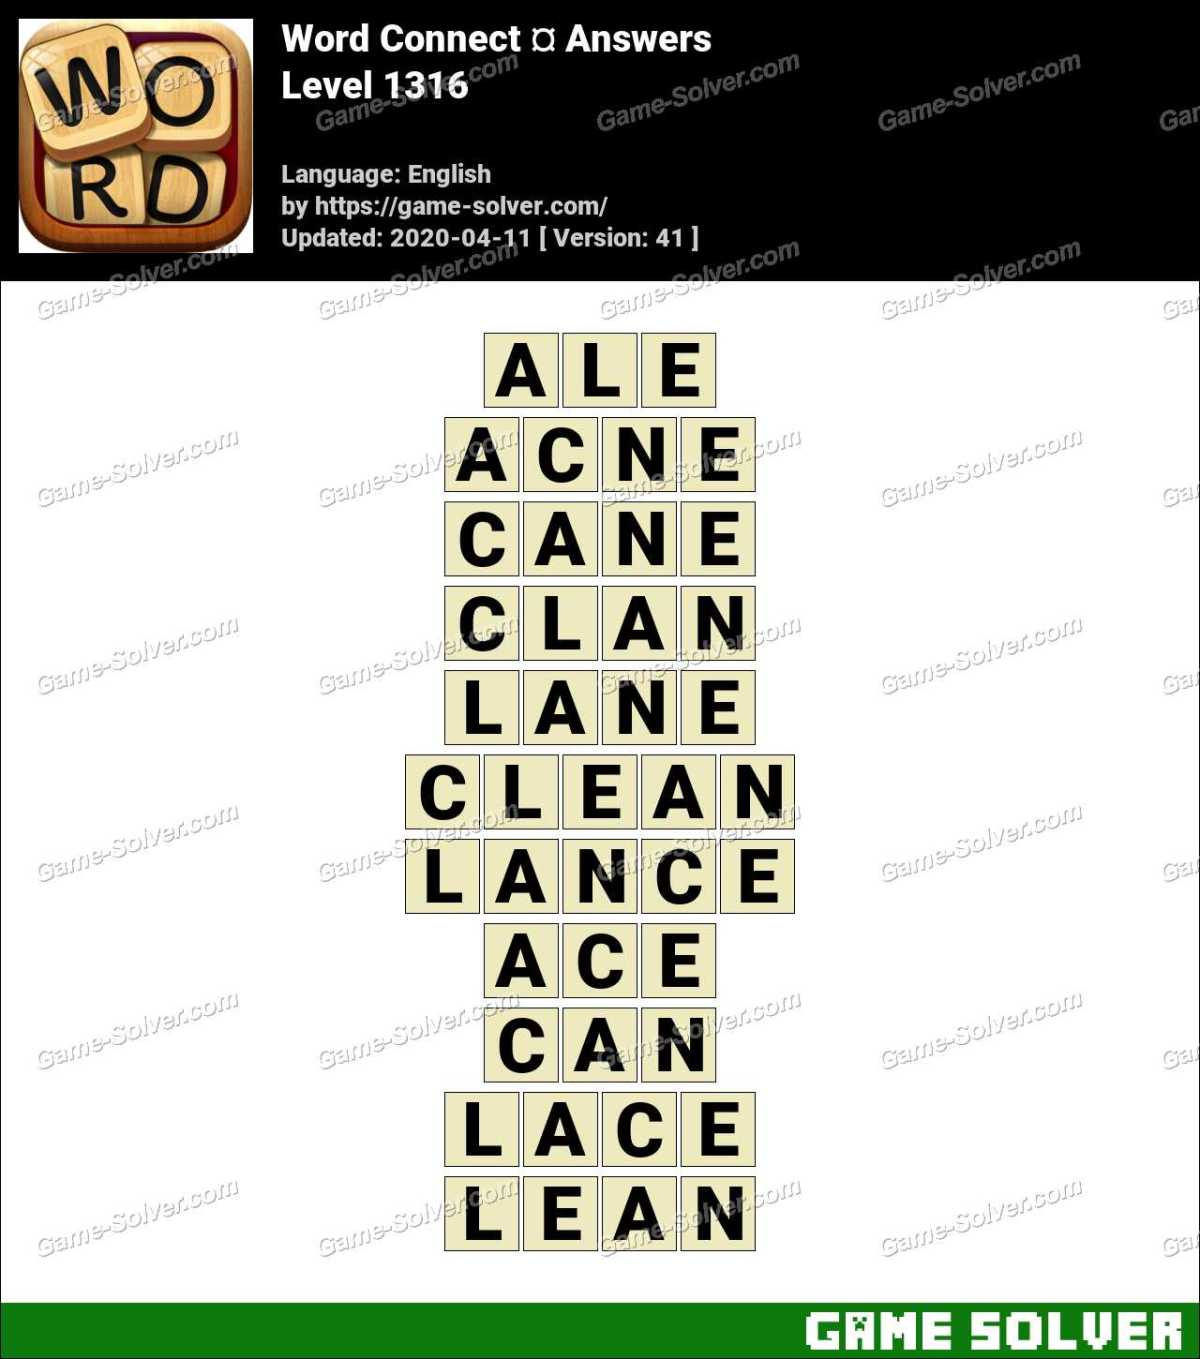 Word Connect Level 1316 Answers